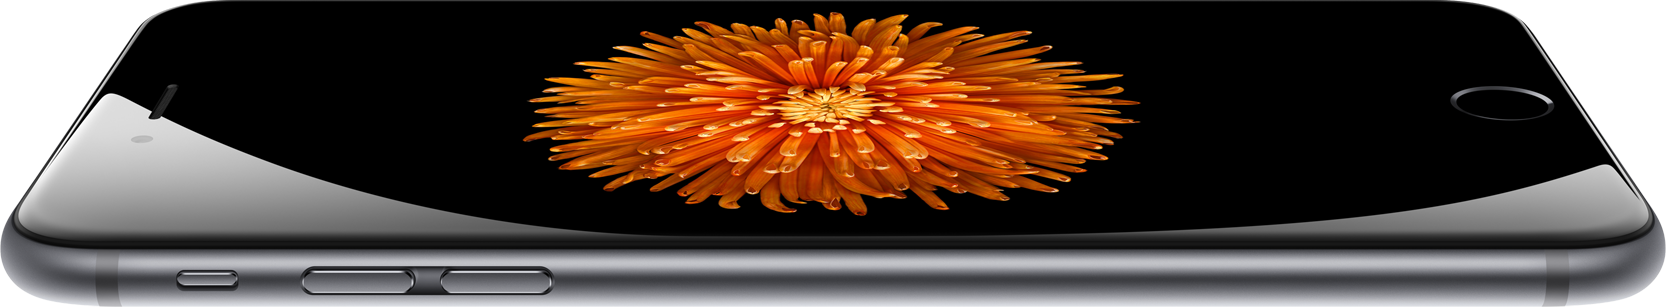 New videos prominence iPhone 6's faster Wi-Fi and real-world multitasking performance